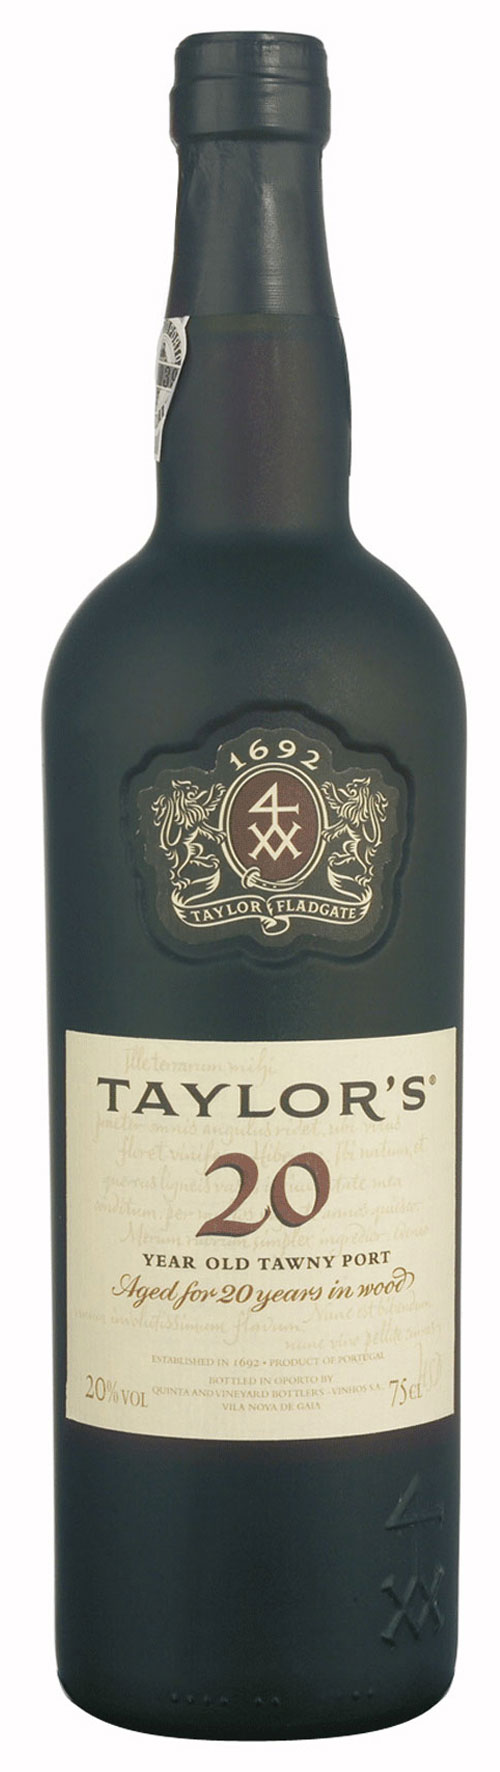 Portwein Taylor's Tawny 20 Years Port